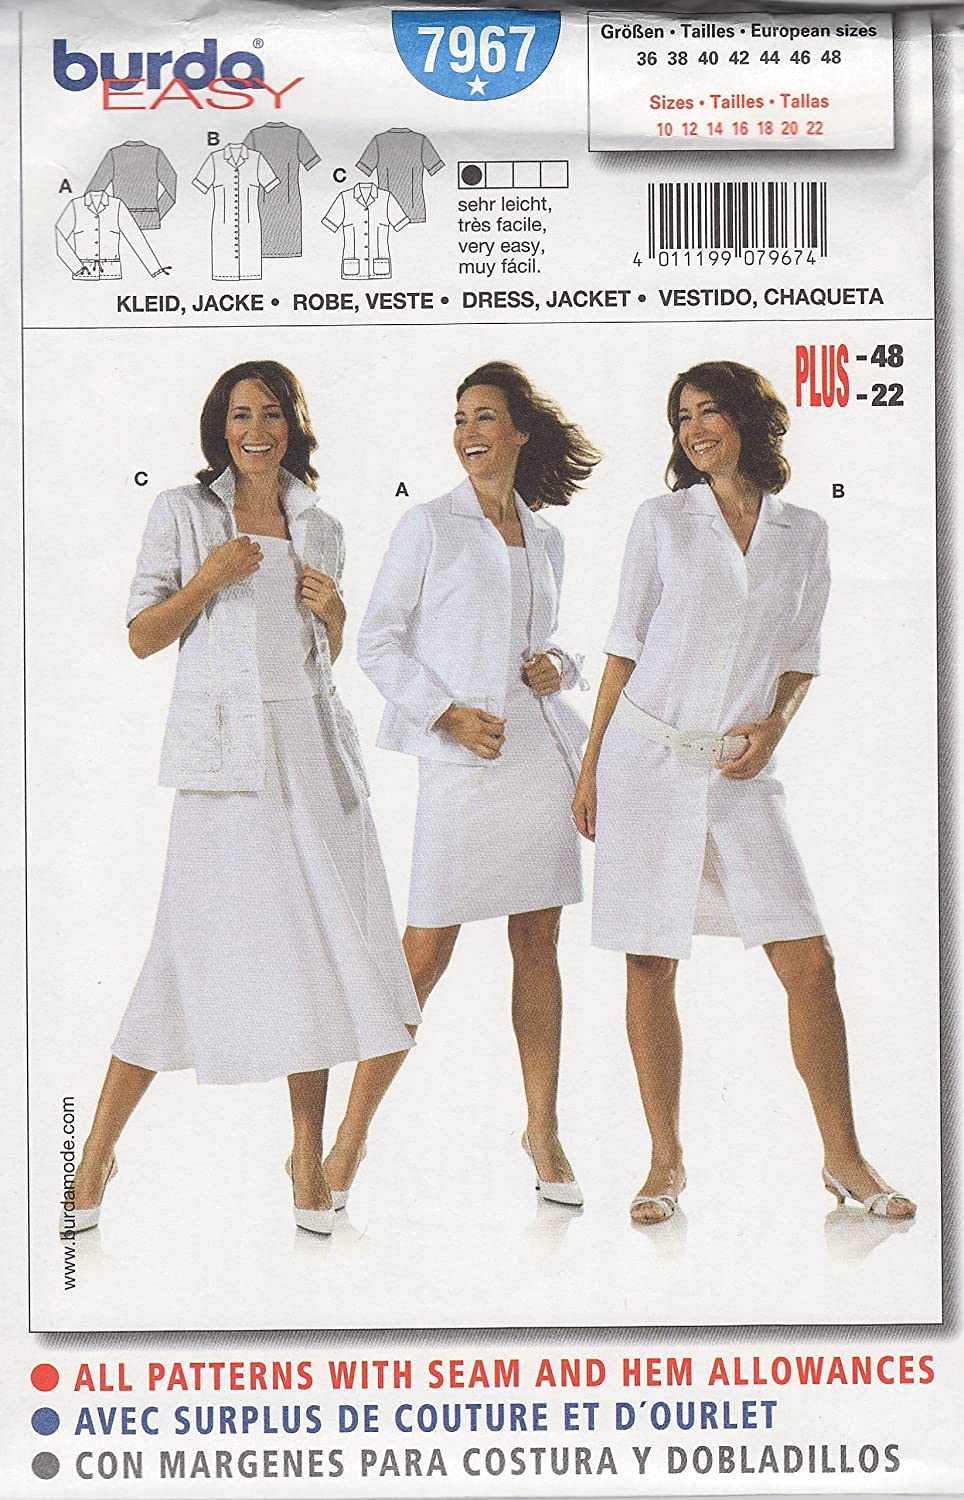 Amazon.com: Burda Easy Dress & Jacket Sewing Pattern 7967 in Sizes 10 - 22: Home & Kitchen